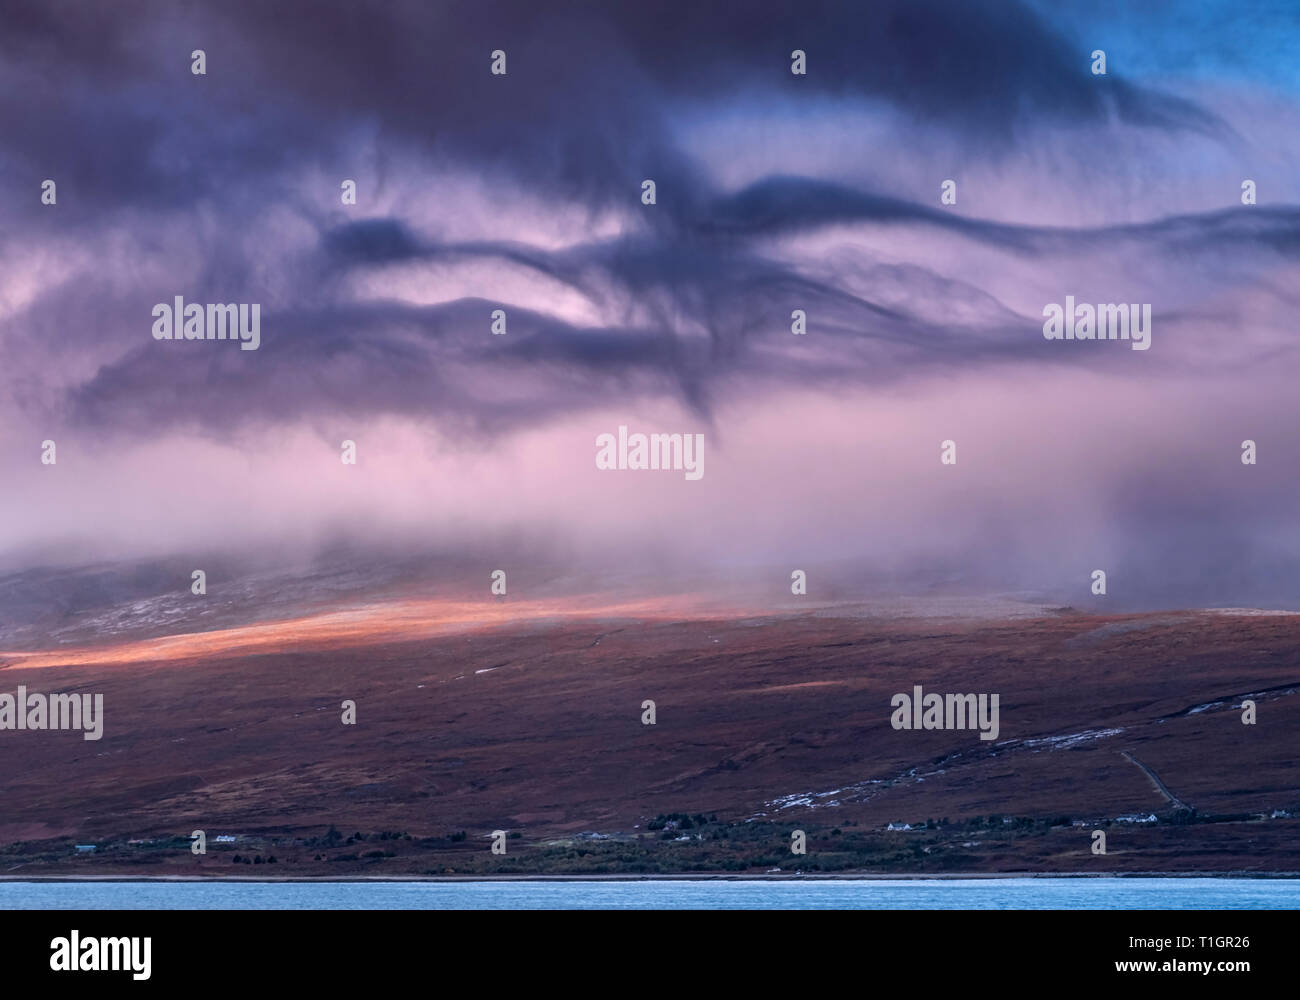 Big Skies over Laid, Crofting Hamlet on the shore of Loch Eriboll, Sutherland, Scottish Highlands, Scotland, UK - Stock Image